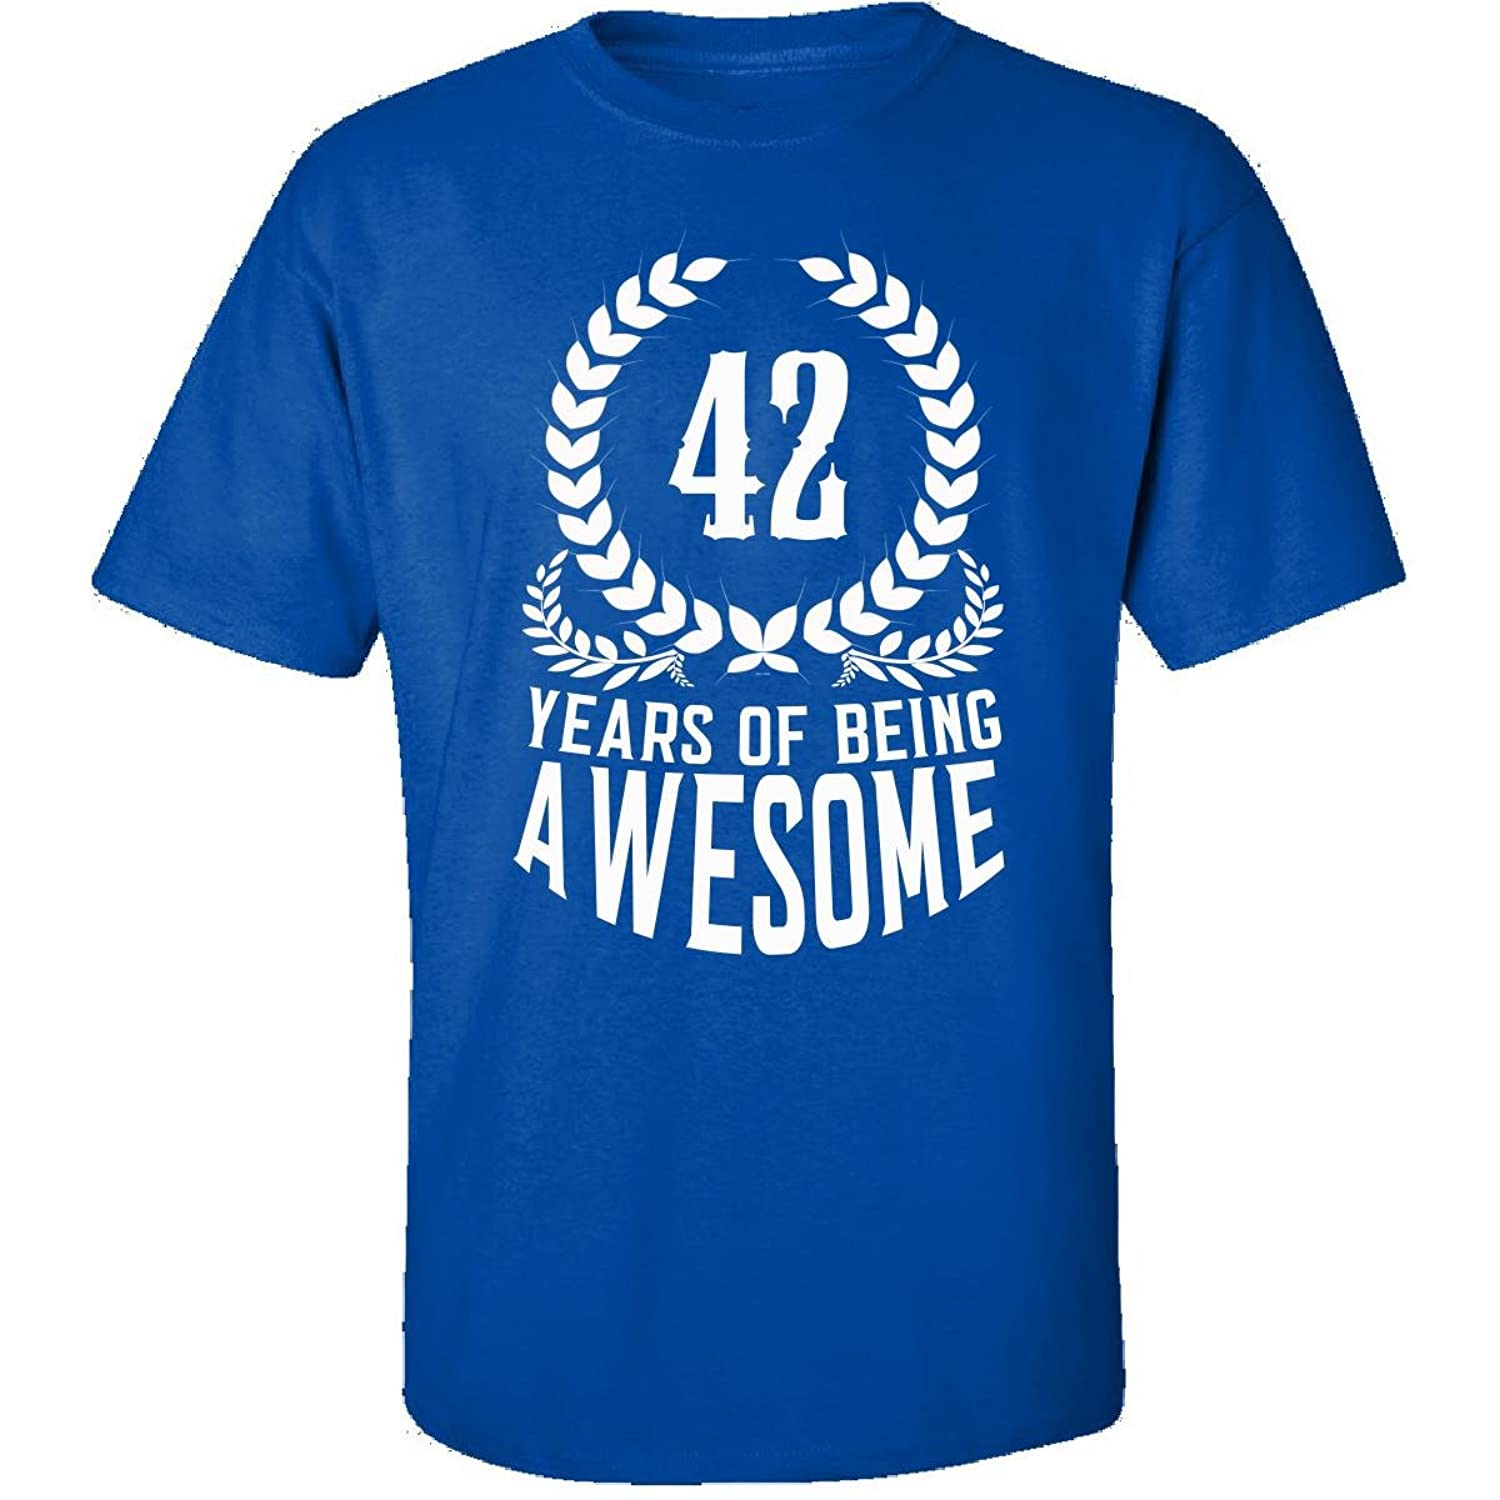 42nd Birthday Gift For Men Woman 42 Years Of Being Awesome - Adult Shirt